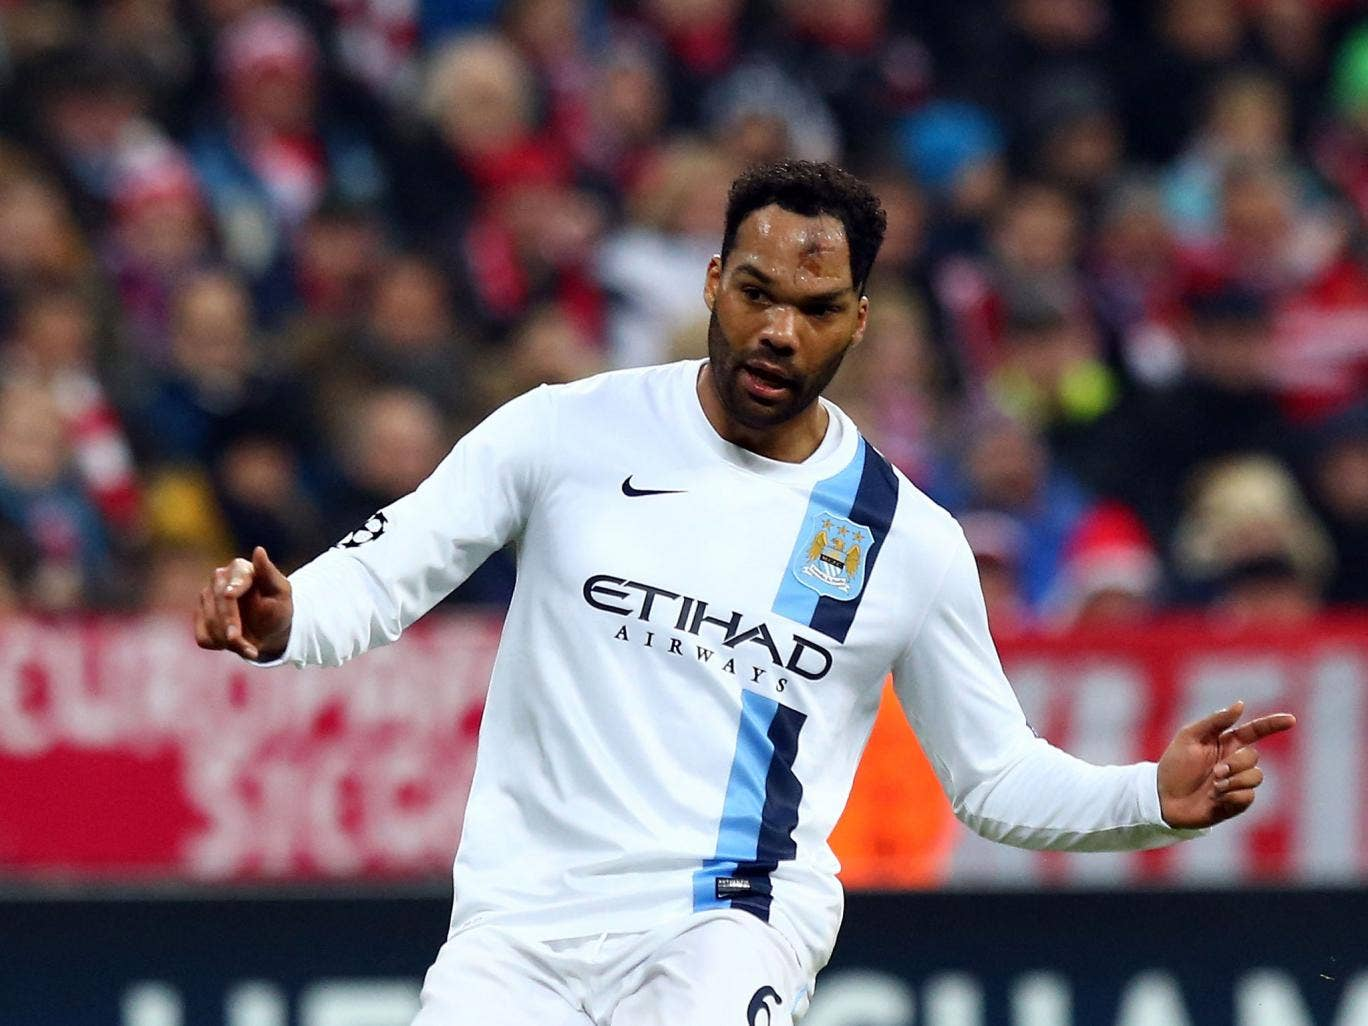 Manchester City defender Joleon Lescott has reportedly been told that he is free to leave Manchester City on loan for the remainder of the season